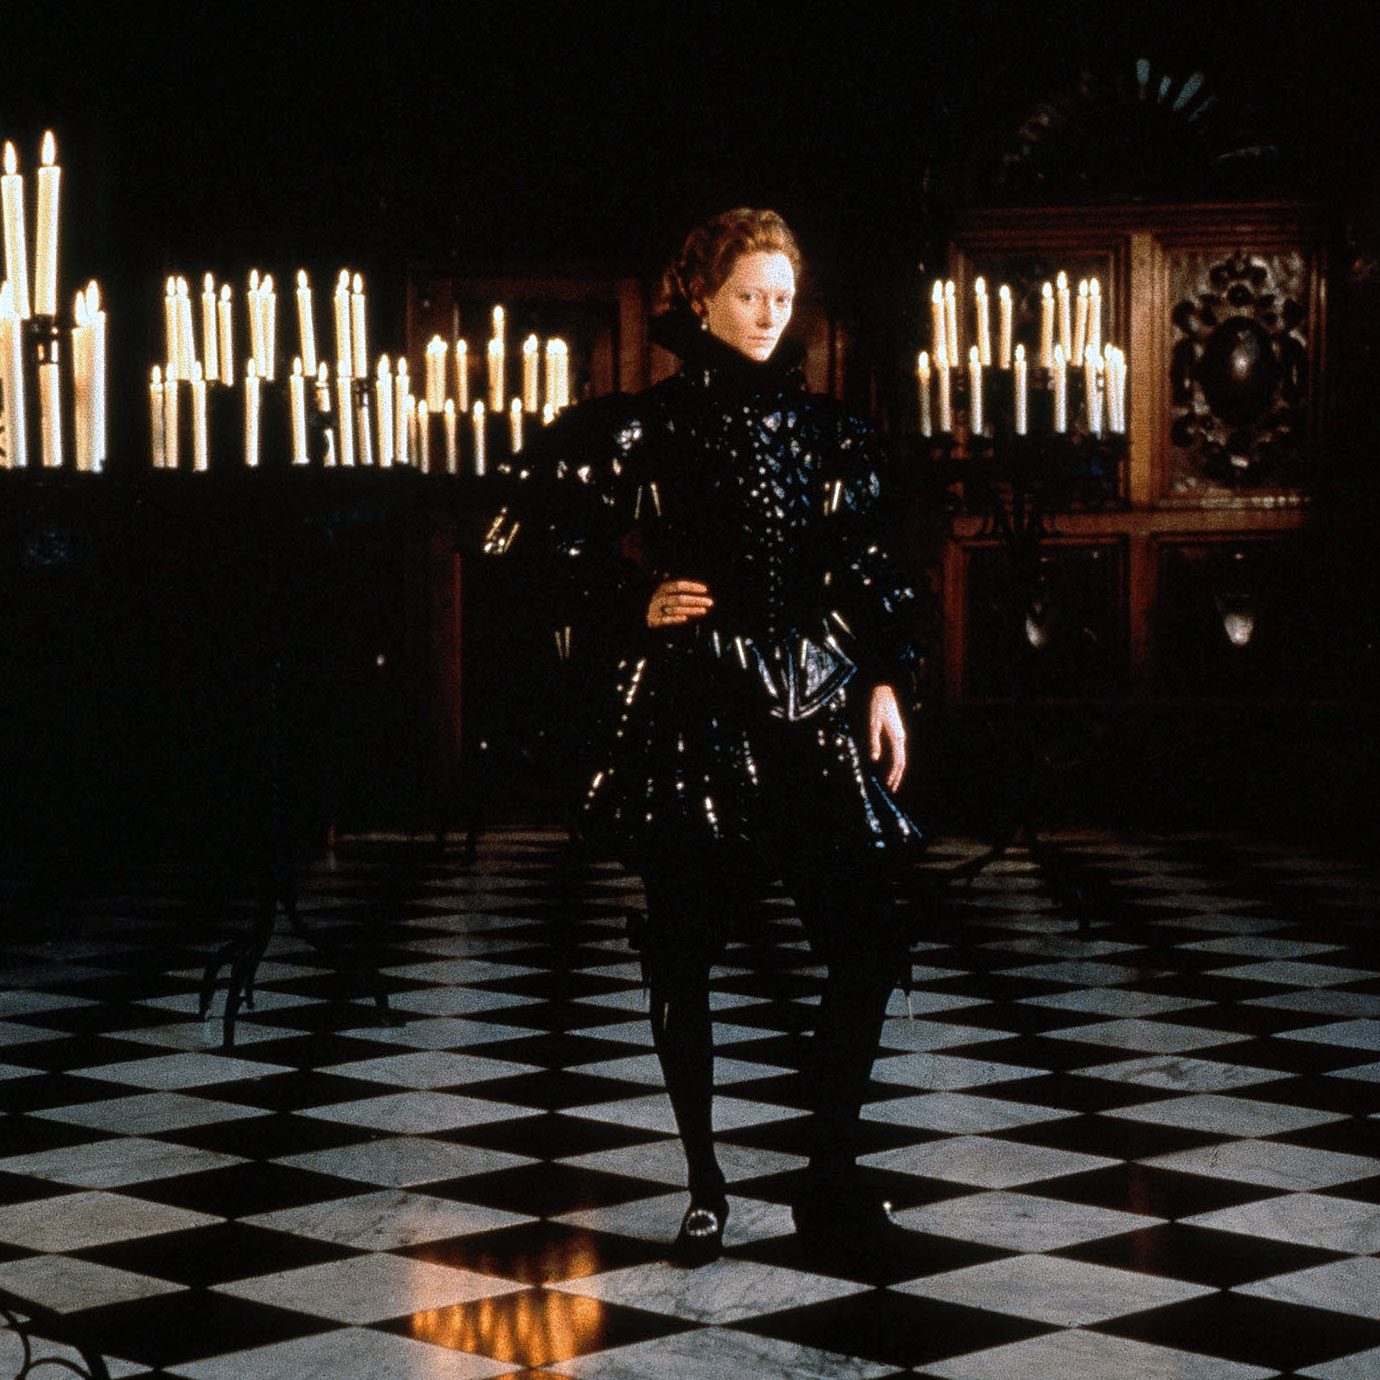 A woman wearing men's Elizabethan dress in a dark room with candles.